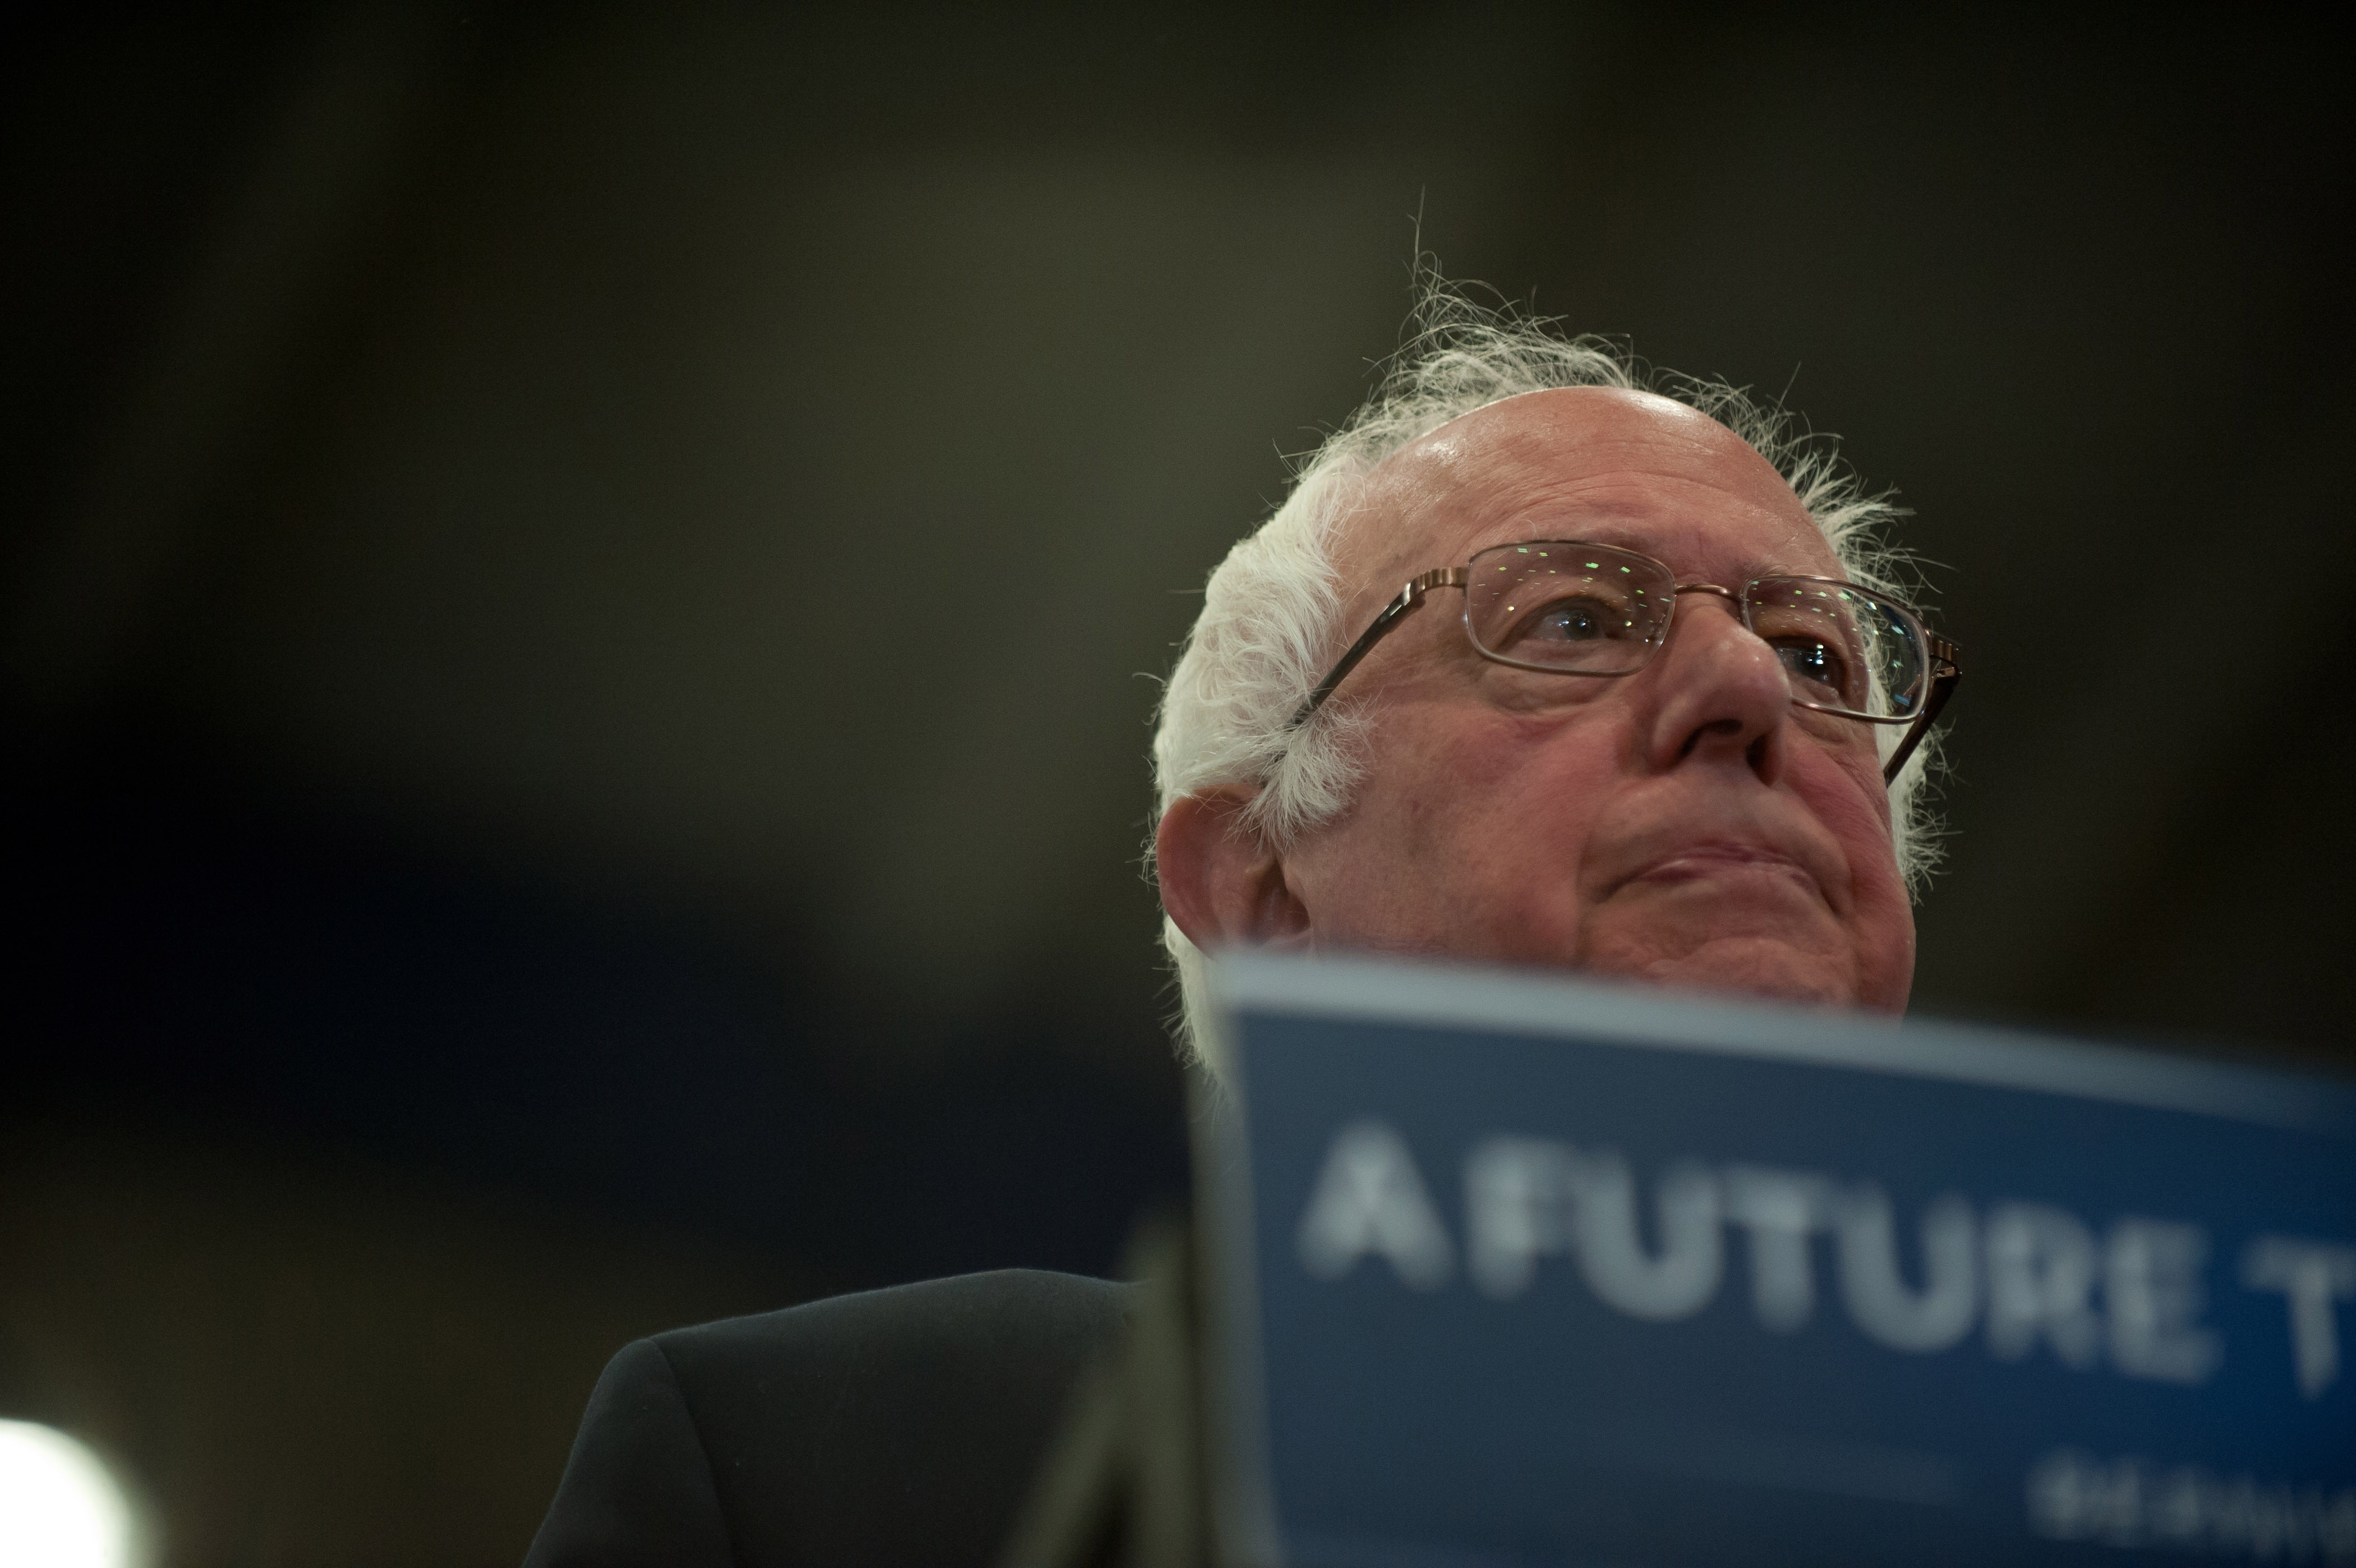 Democratic presidential candidate Bernie Sanders speaks during a rally at the Fitzgerald Field House on the campus of the University of Pittsburgh on April 25, 2016 in Pittsburgh, Pennsylvania.